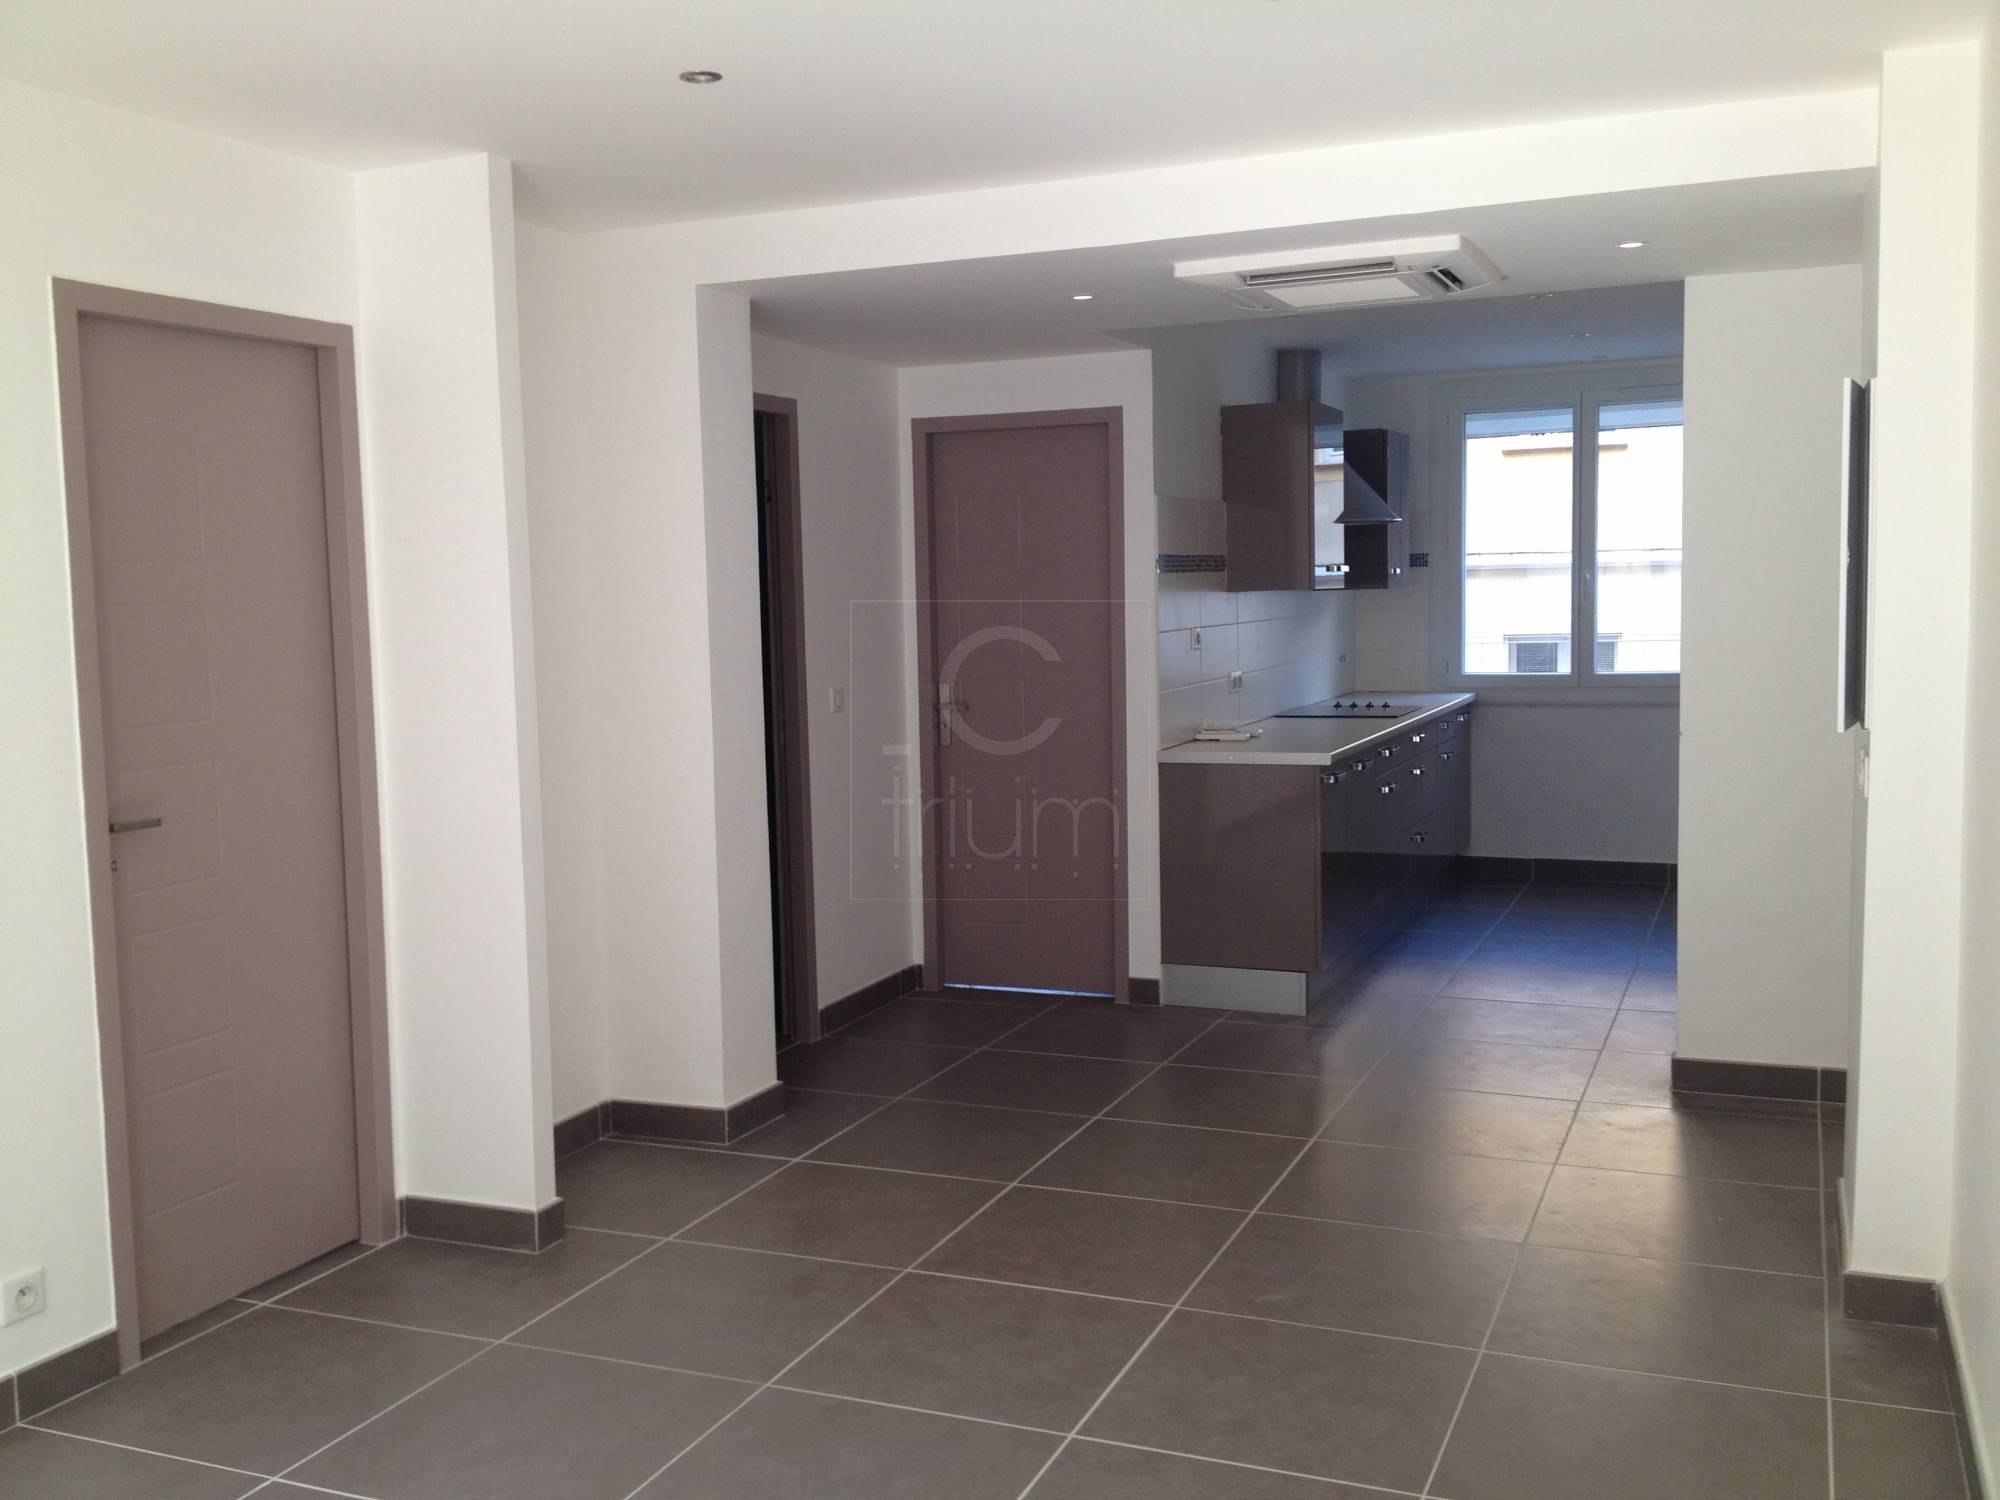 Location appartement t3 f3 marseille 7eme endoume refait for Location meuble marseille